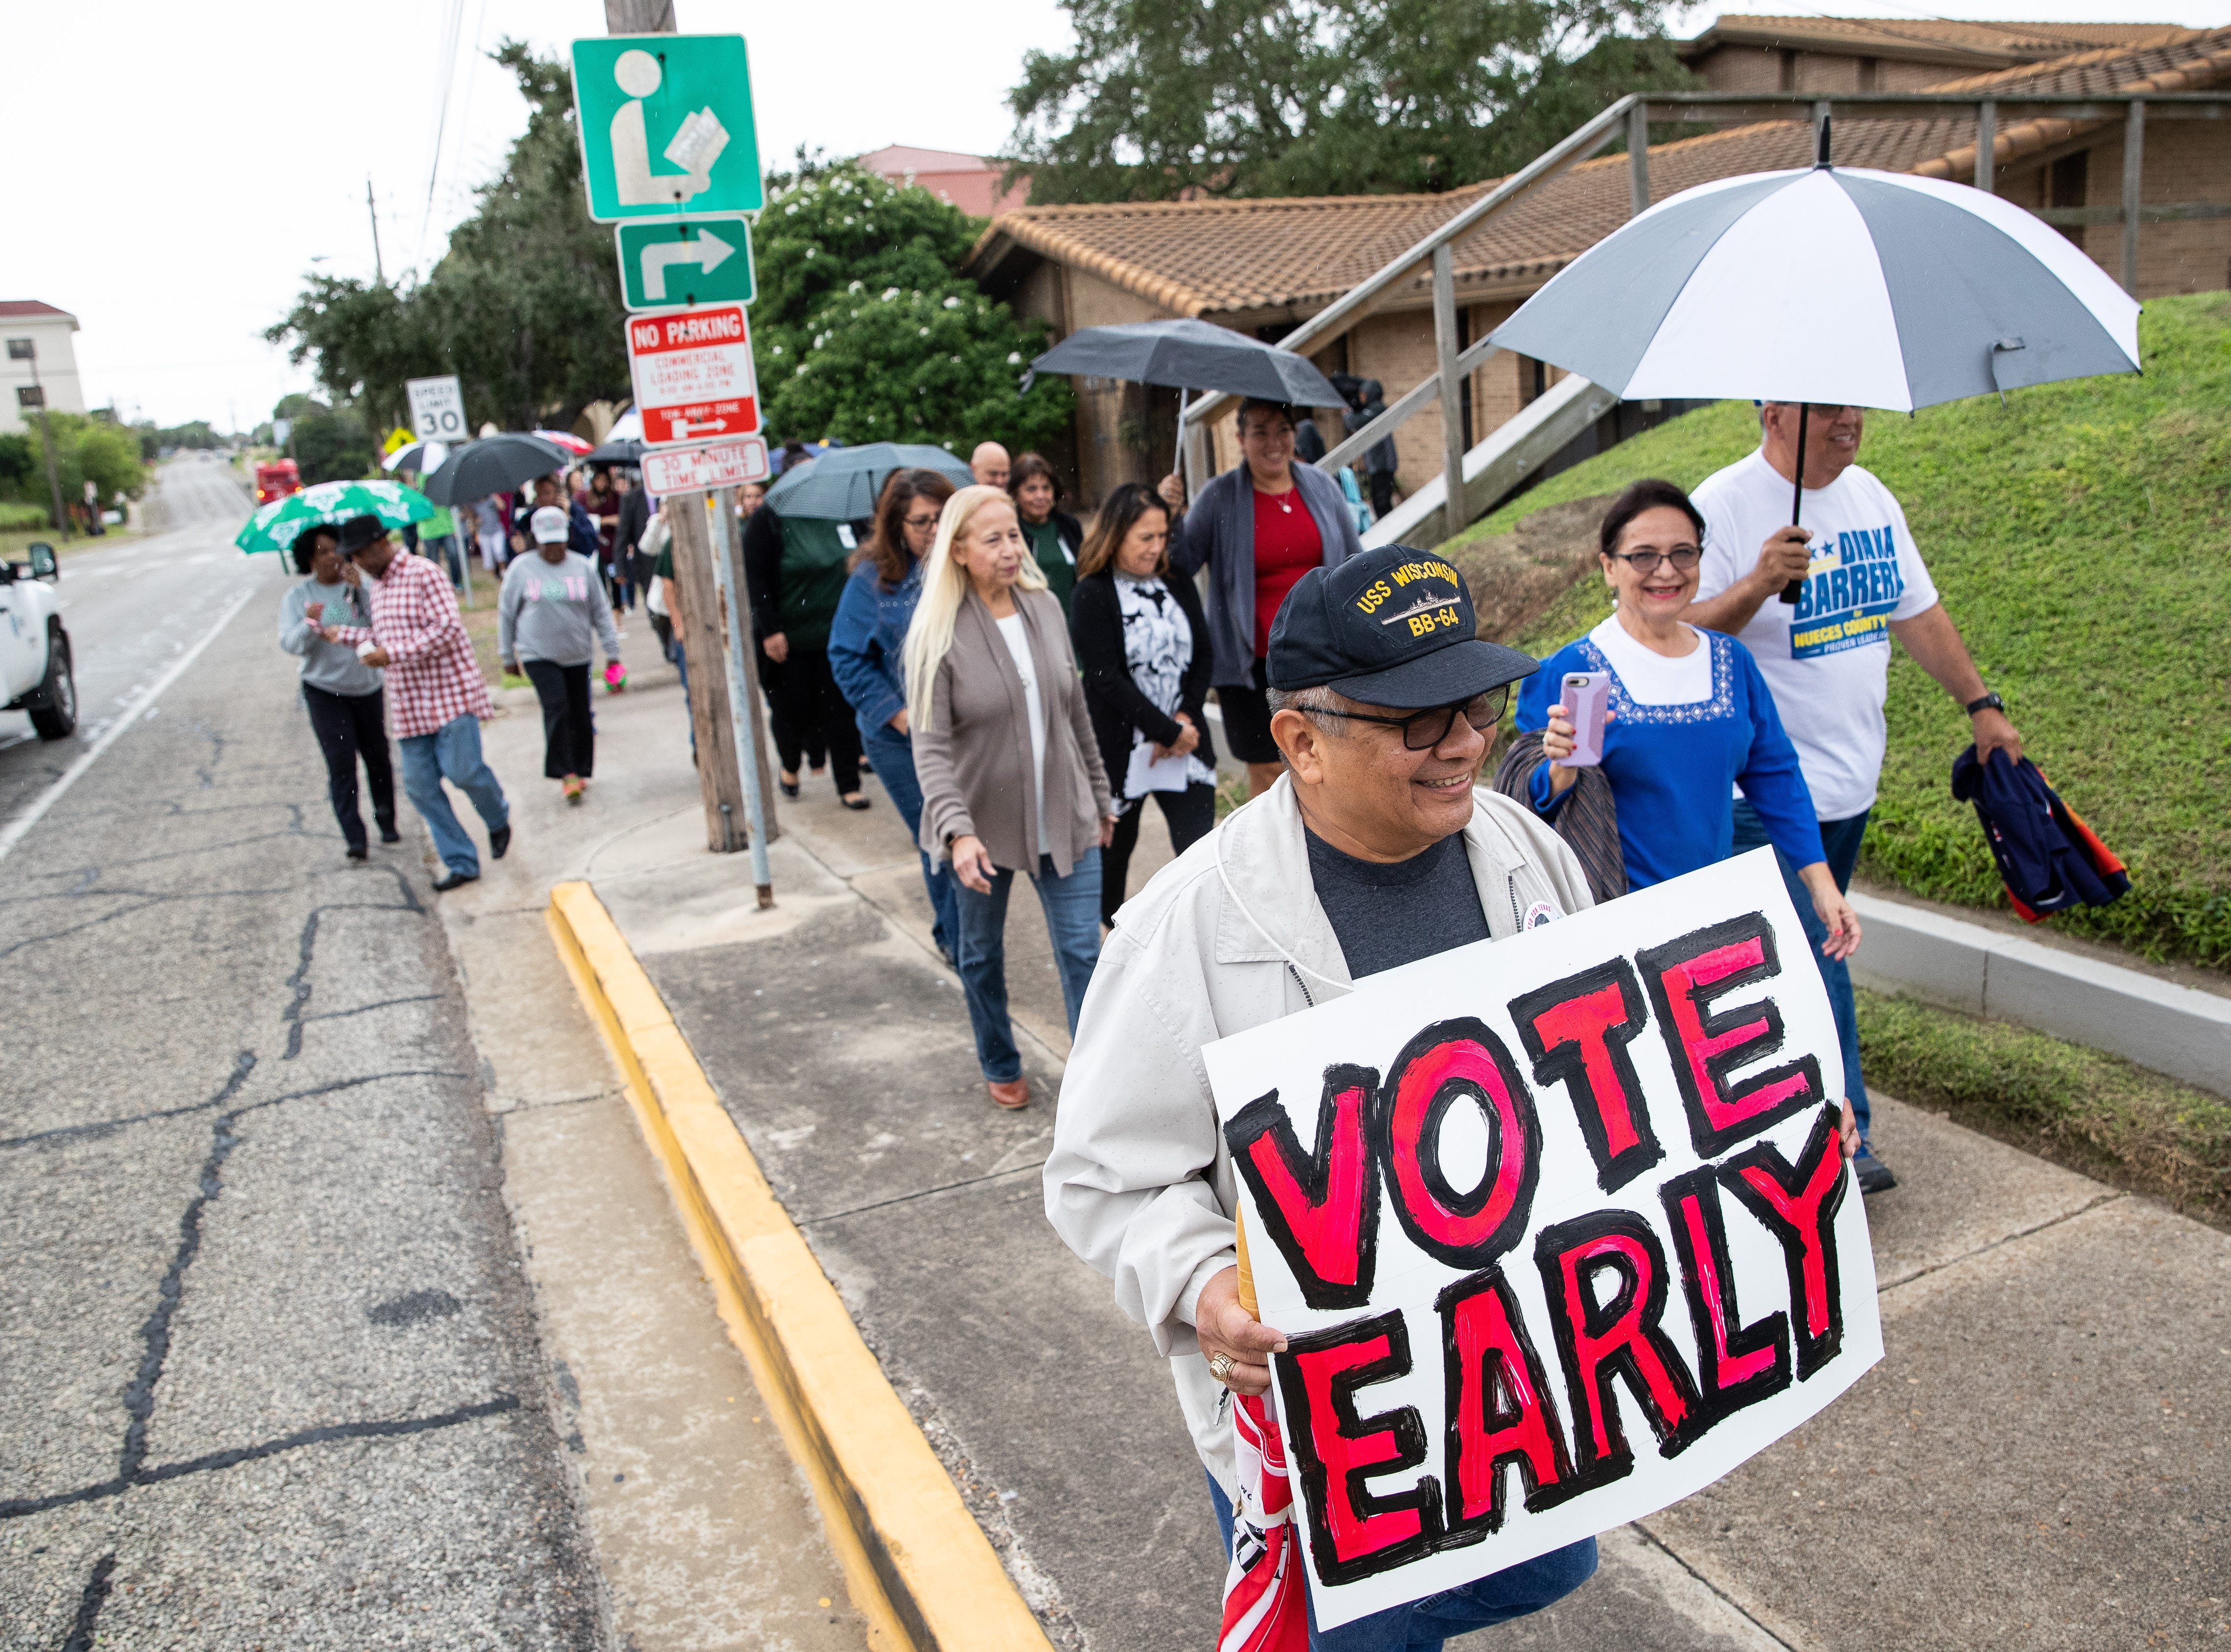 Despite losses statewide, voter turnout spike lifted down-ballot Texas Democrats